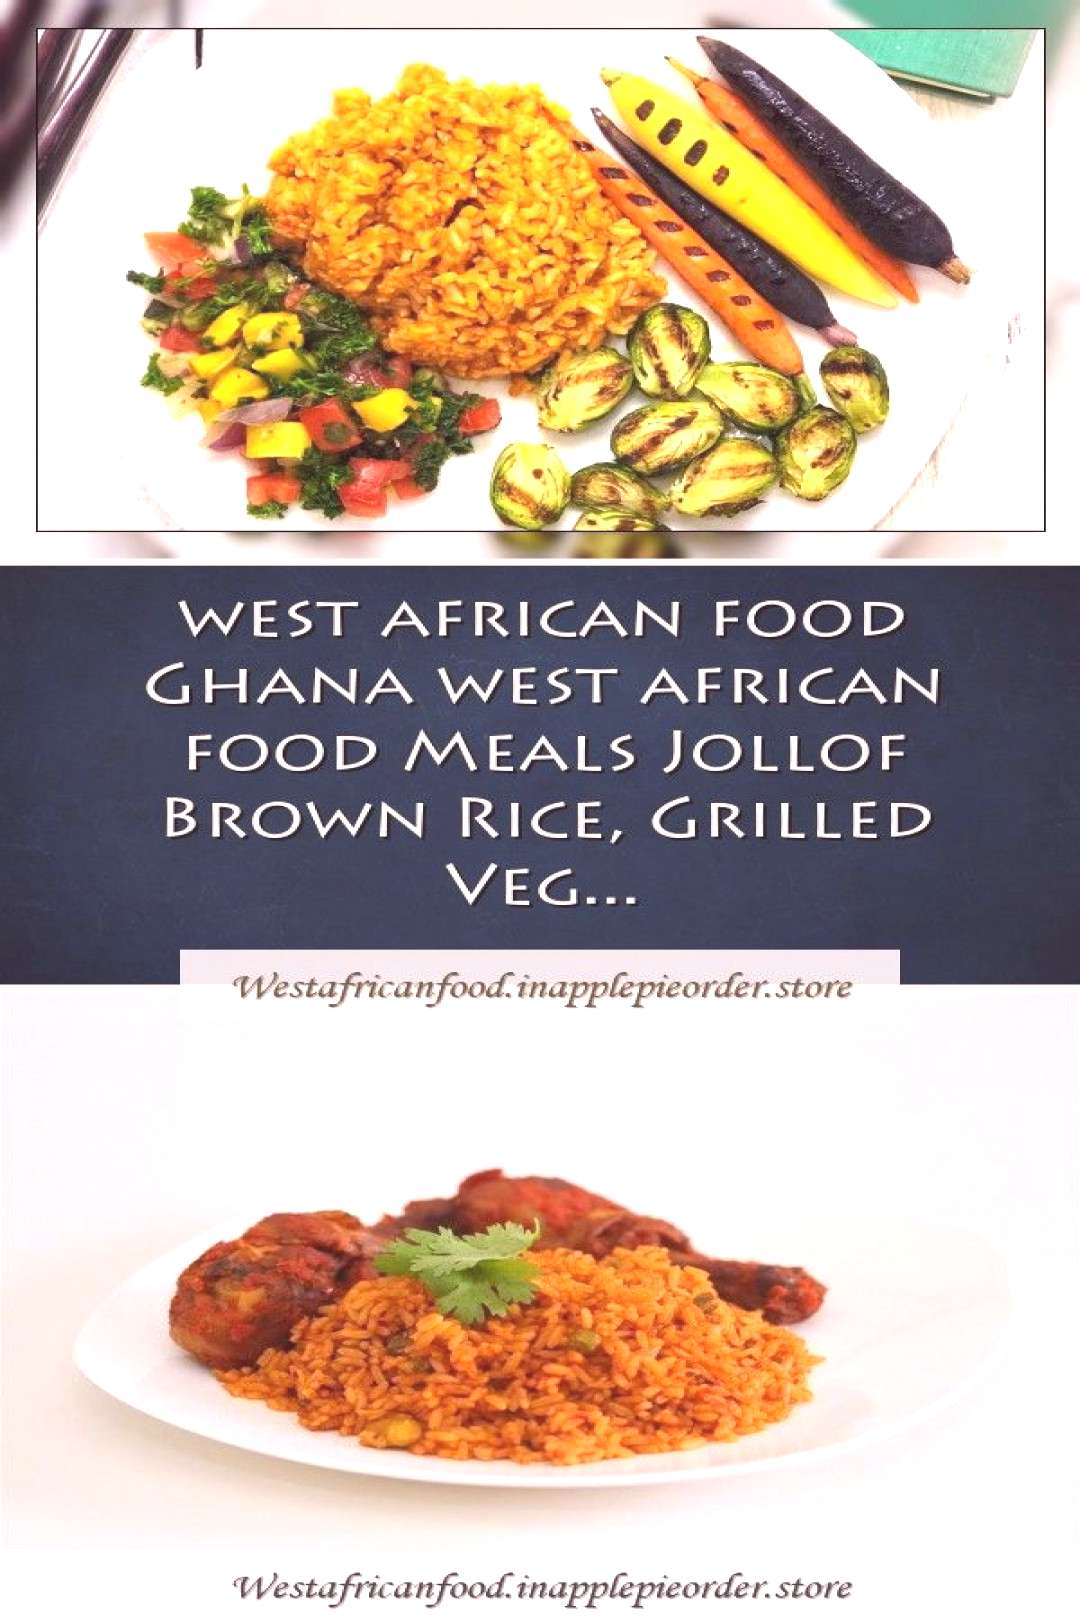 west african food Fish west african food Vegetarian Jollof Rice nigeria gha ...west african food Fi